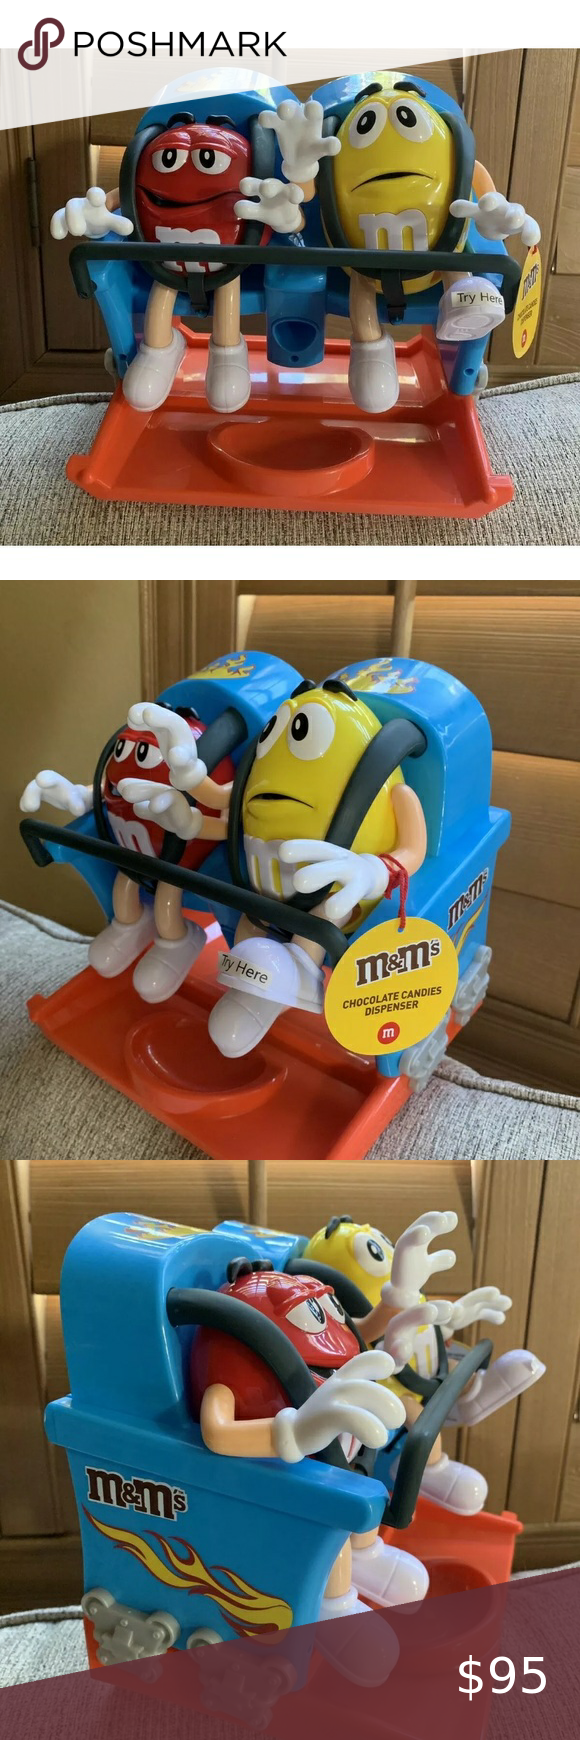 2020 M&M Candy Cane Christmas Dispenser M&M's roller coaster candy 🍬 dispenser new unused in 2020 | Candy